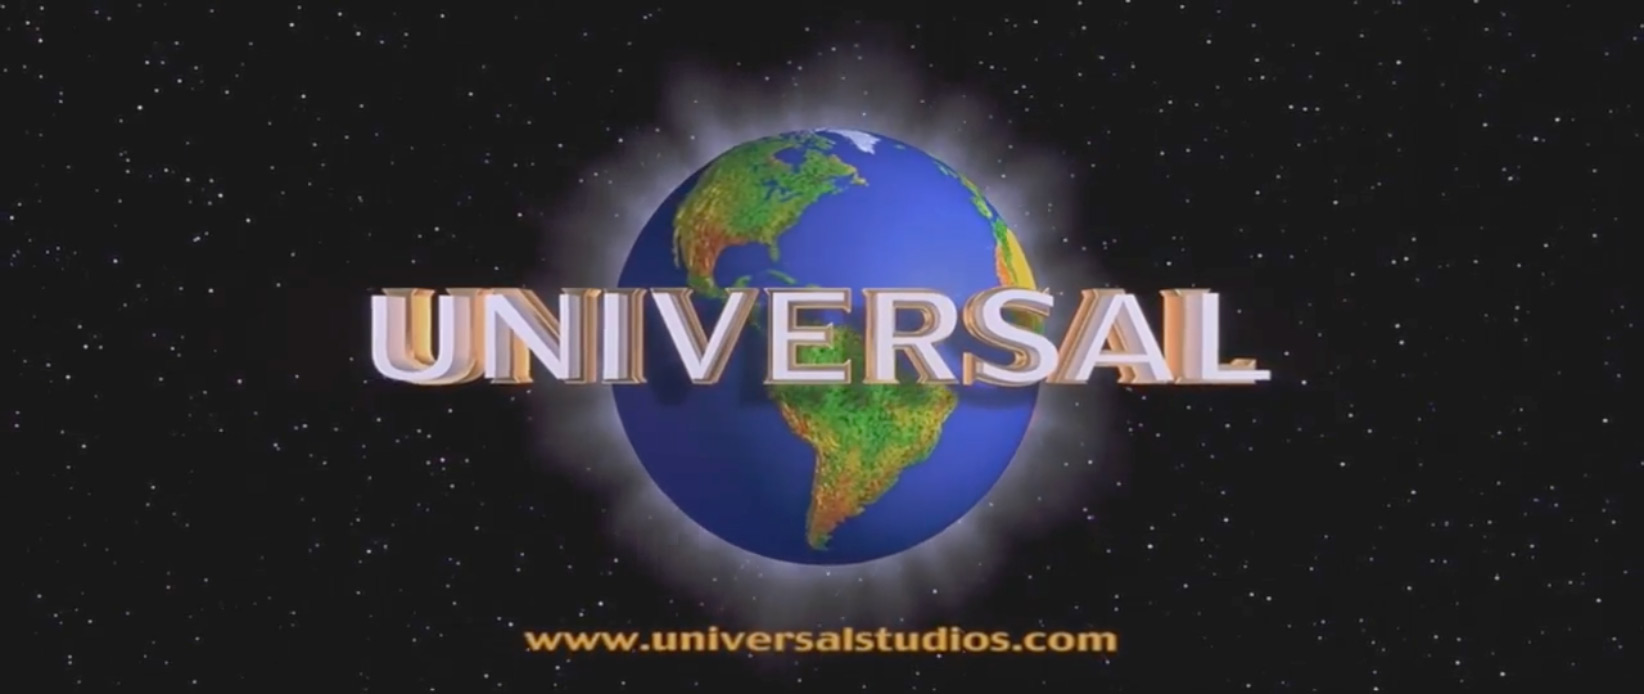 Universal Pictures Logo 1997 Pictures to Pin on Pinterest ... Universal Pictures Logo